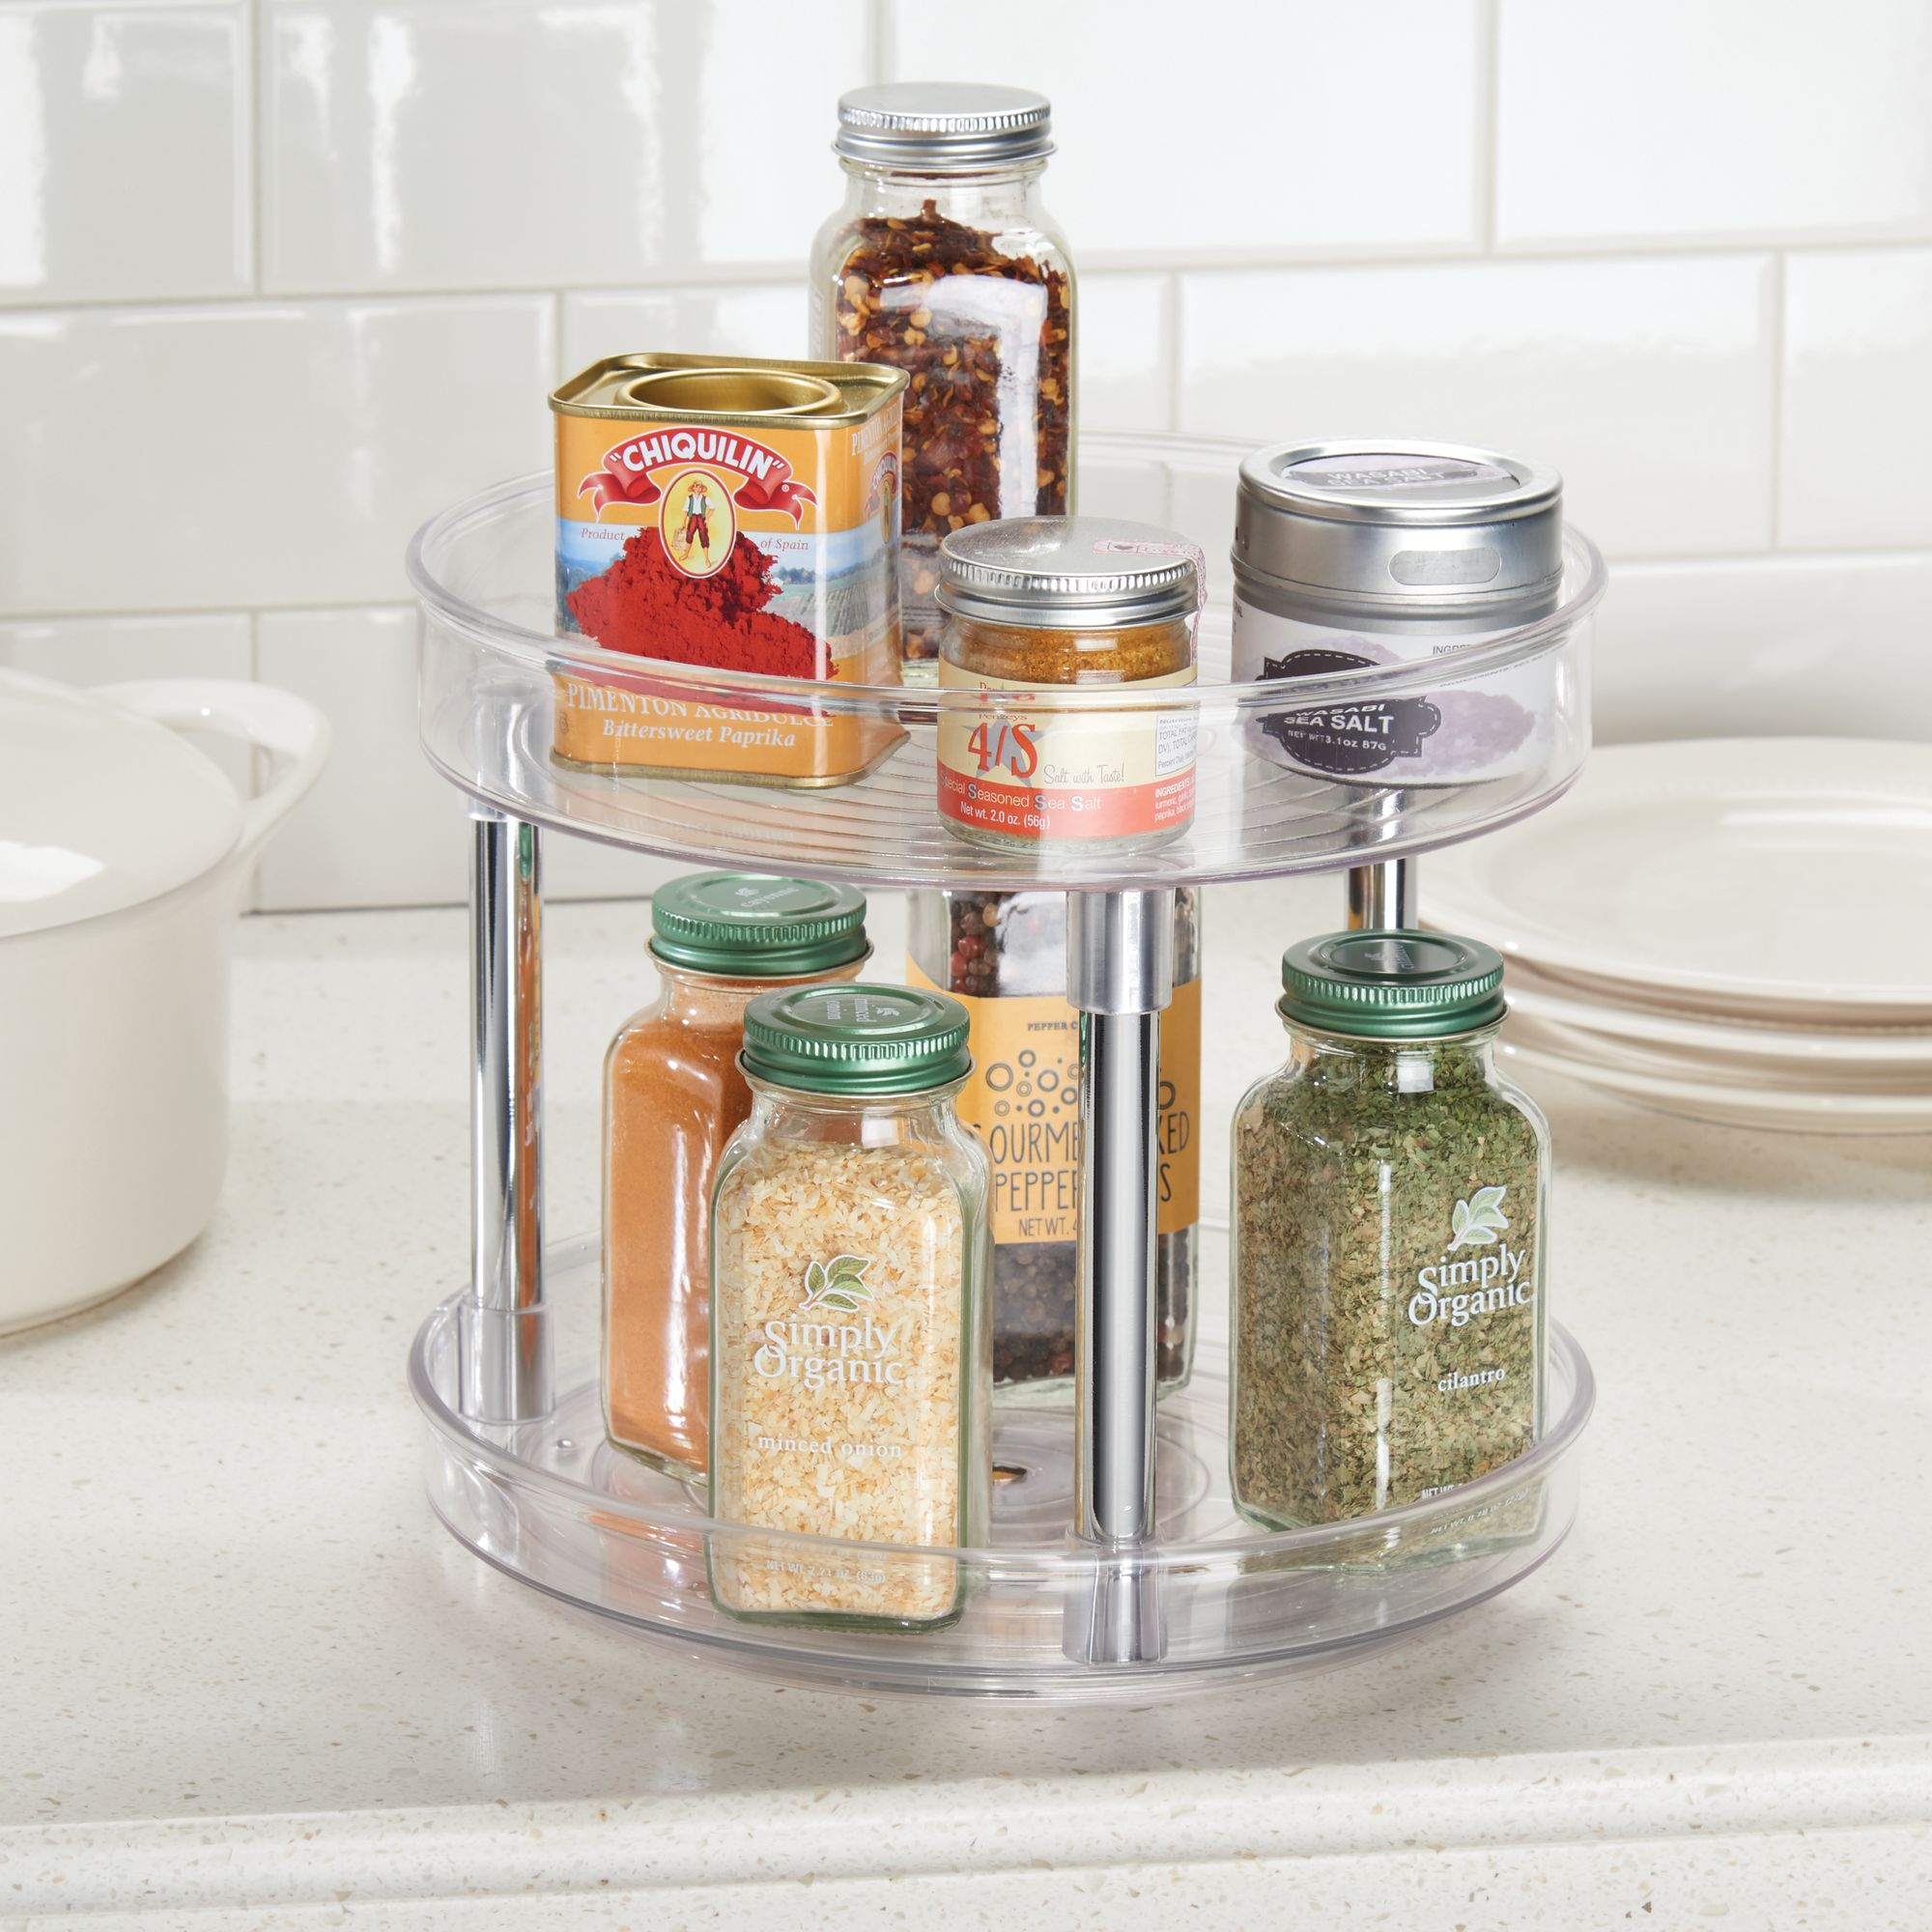 2-tier turntable with spices